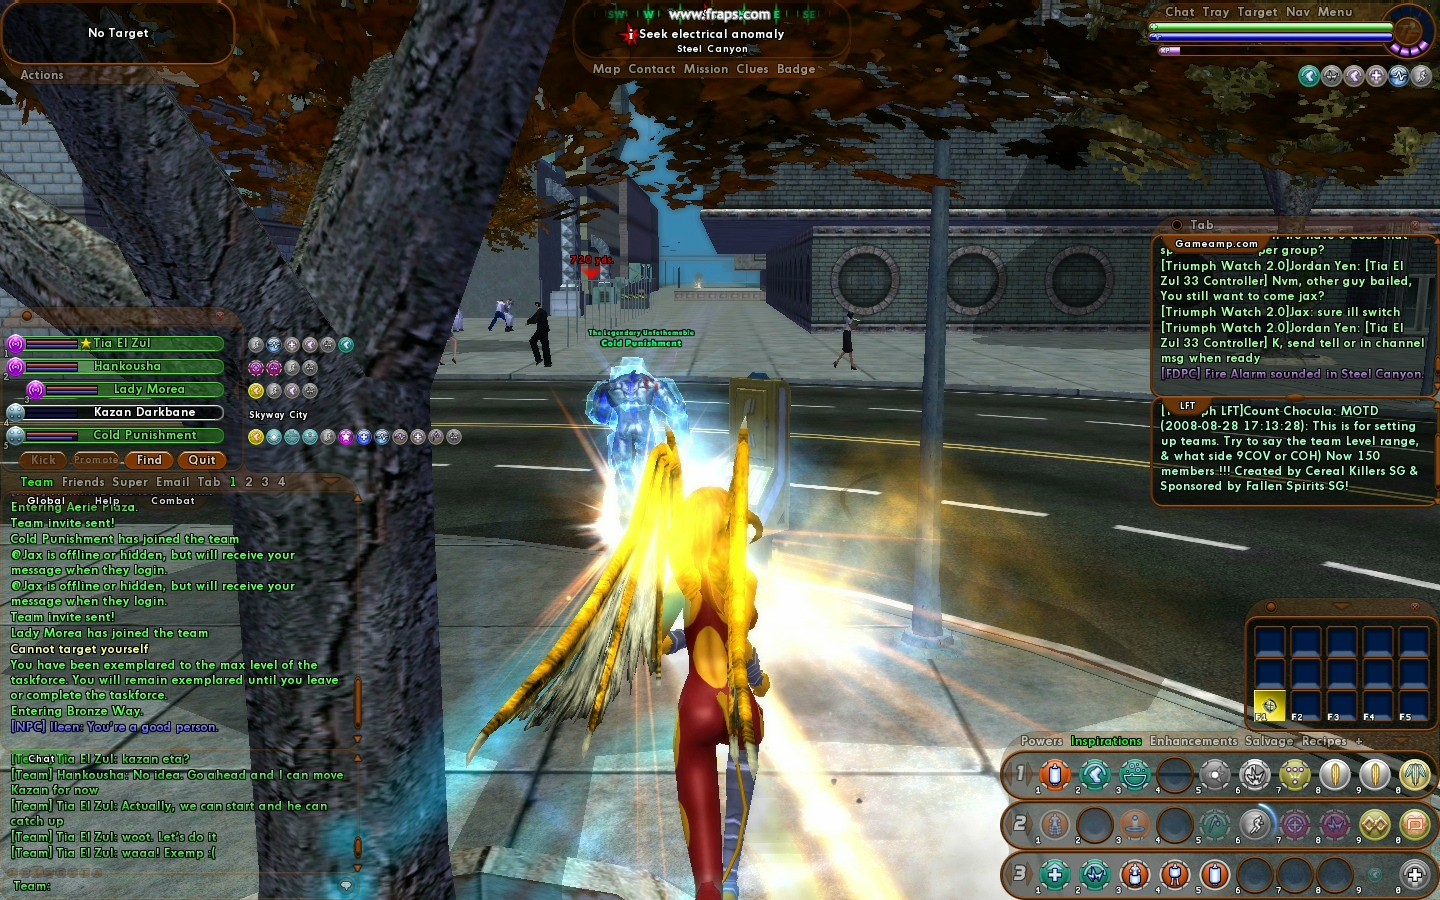 2008.09.14 13:12:53:65 CityOfHeroes (Video: 146.2Mb)